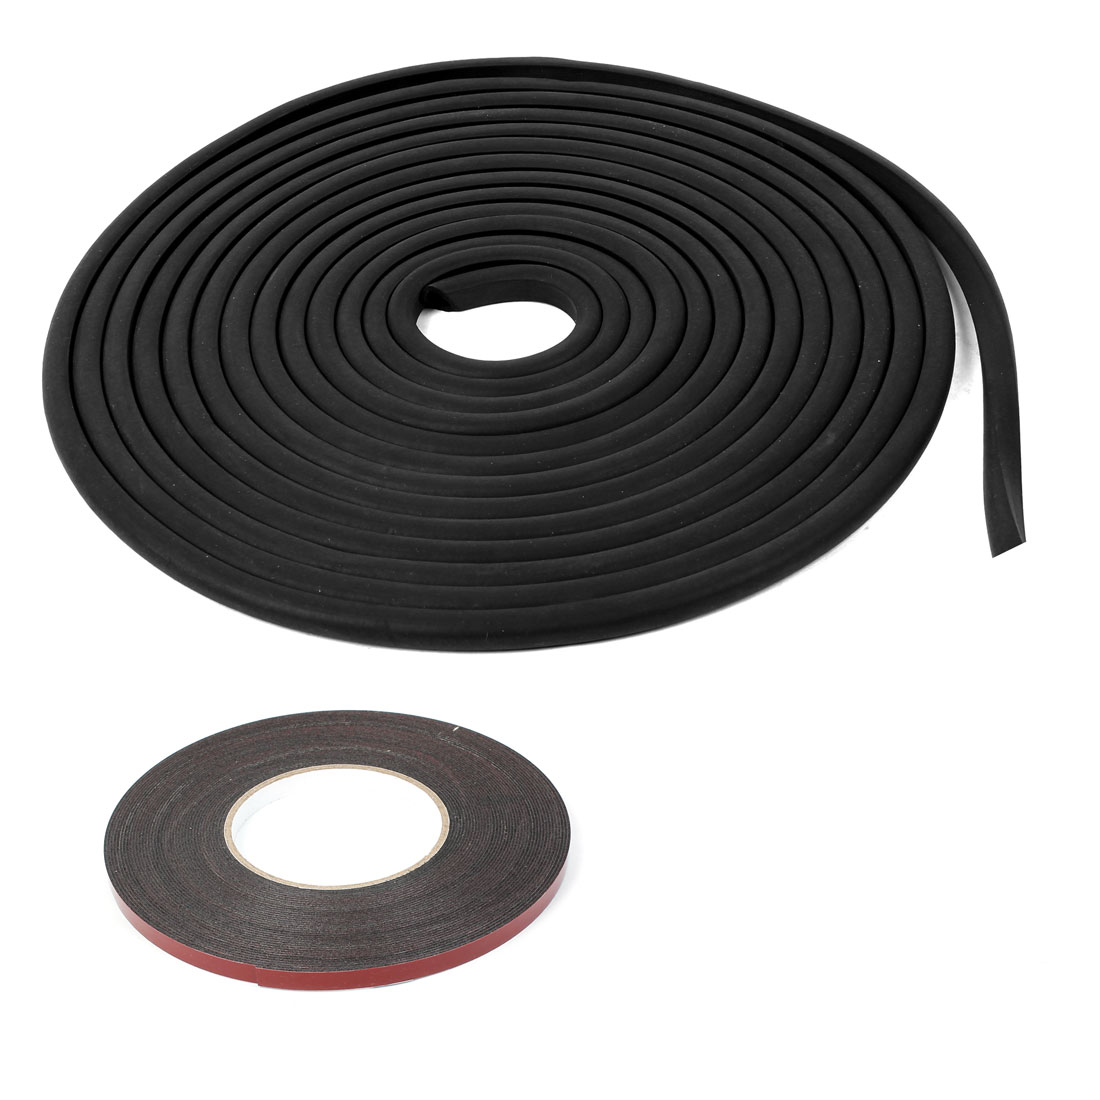 Automobile Car Black Door Window Noise Seal Strip Bar 15M Long Size S